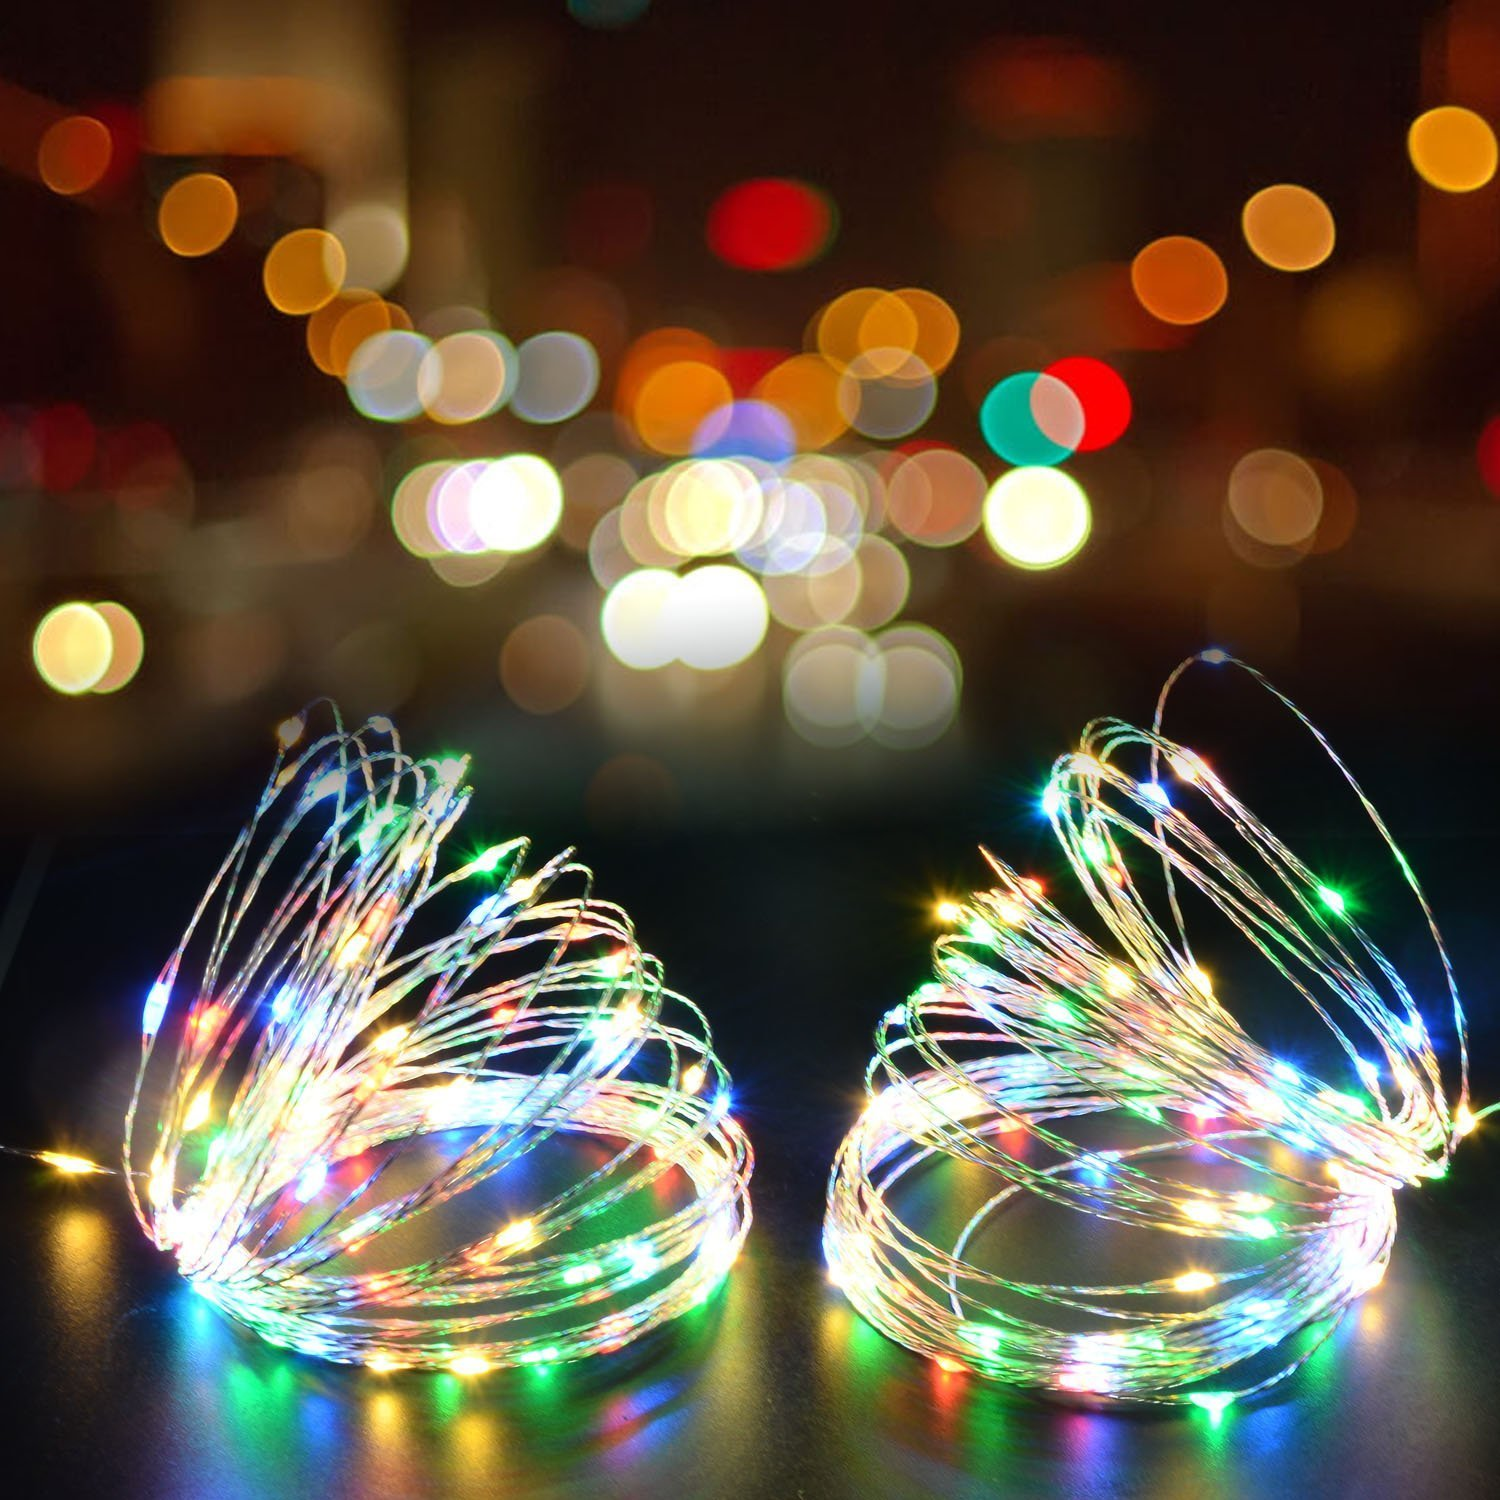 Juzihao 2 Sets 9.8ft 30 LEDs Multi Color Fairy LED Copper Wire String Lights, AA Battery Powered Décor Rope Lights For Seasonal Decorative Christmas Holiday, Wedding, Parties